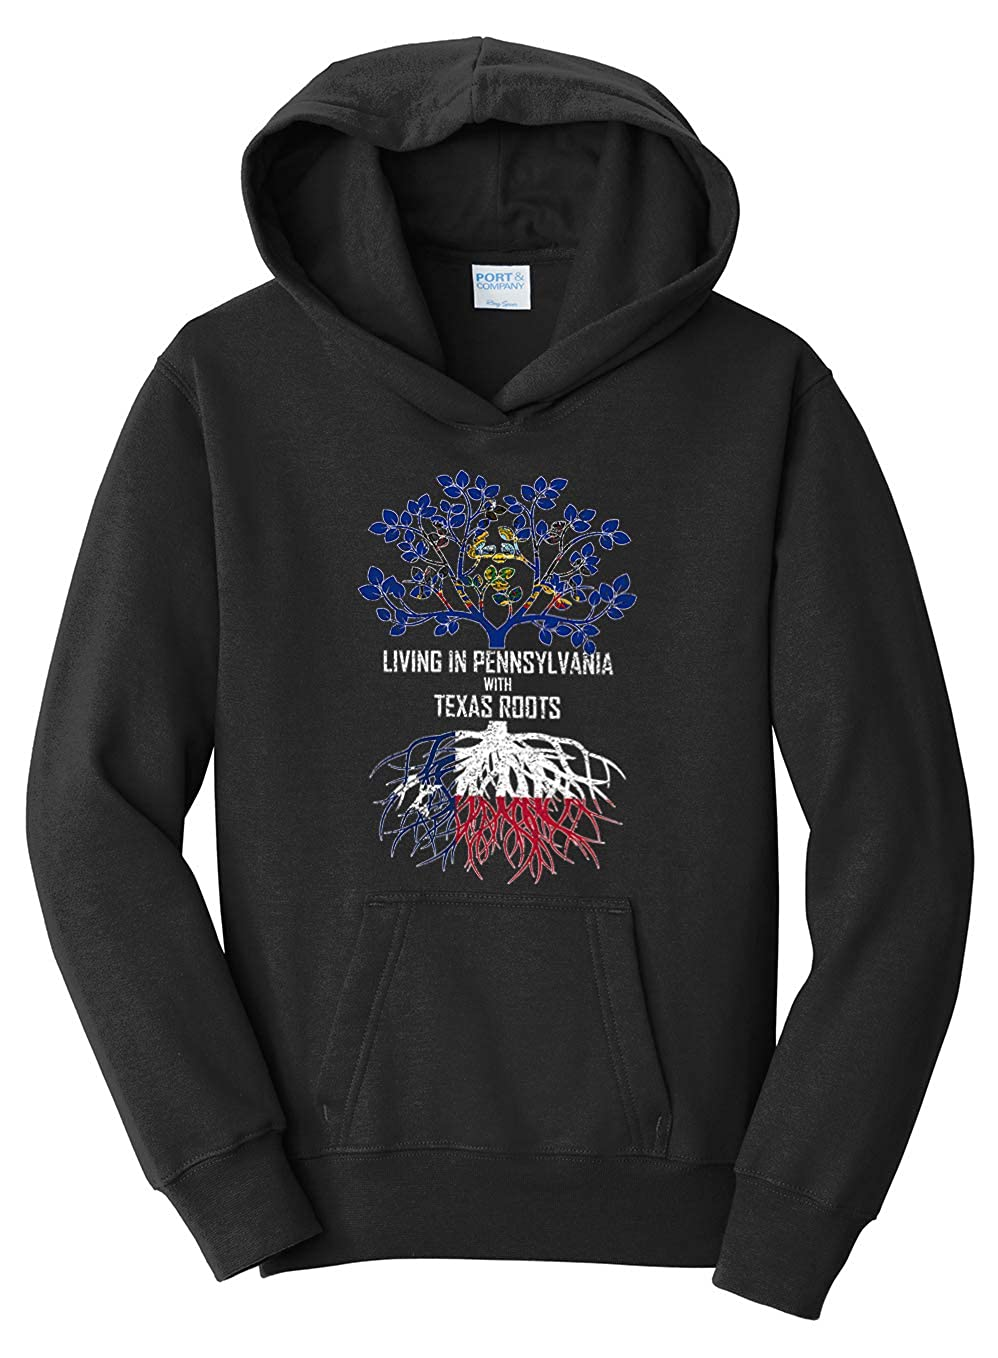 Tenacitee Girls Living in Pennsylvania with Texas Roots Hooded Sweatshirt